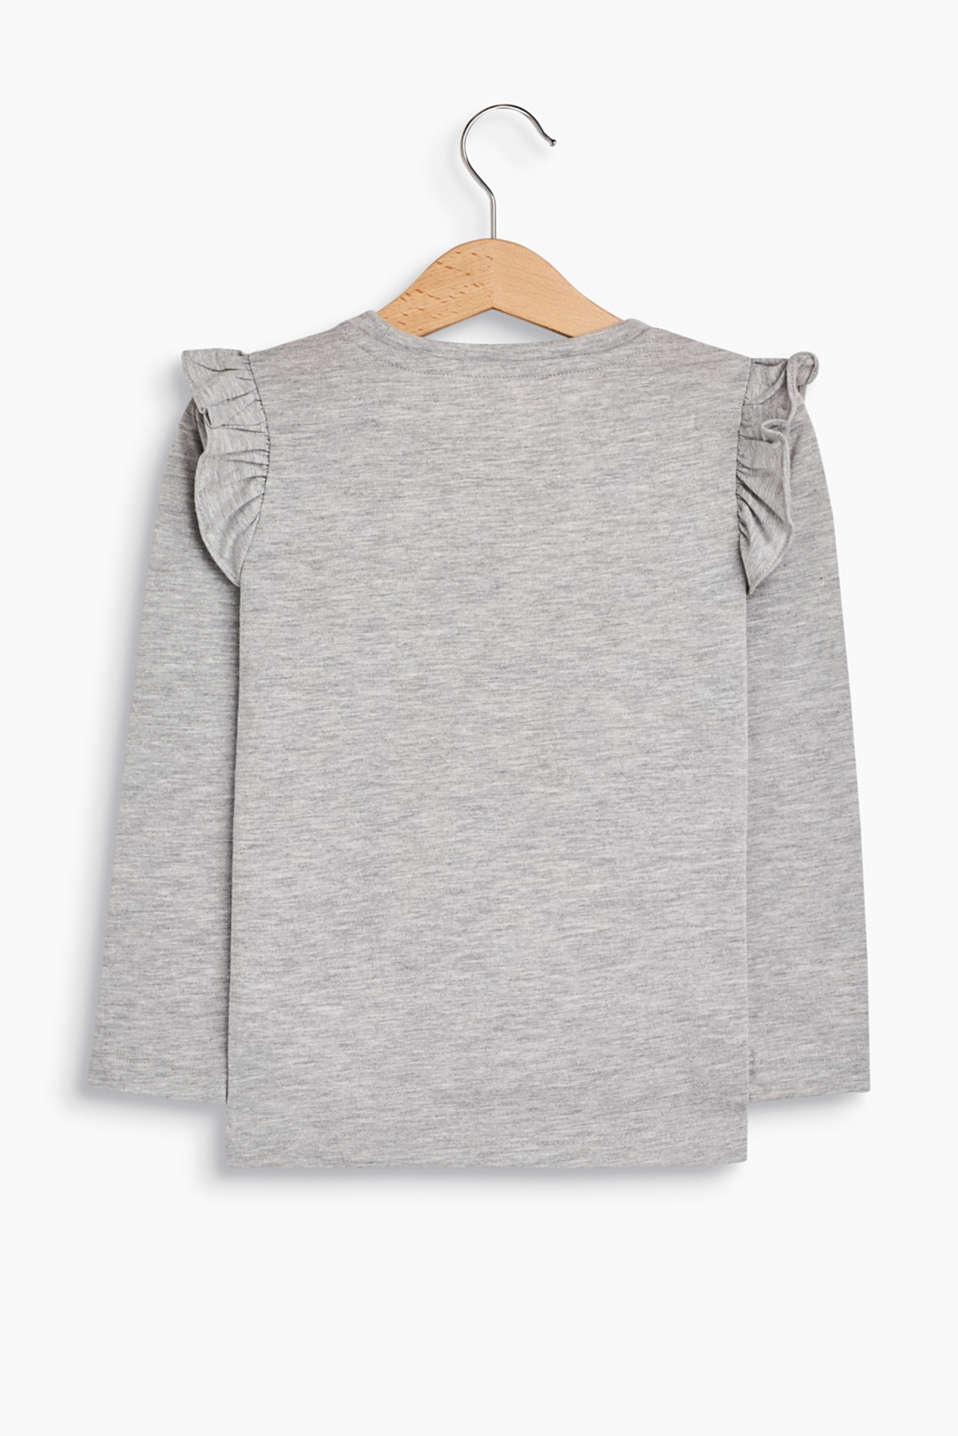 Appliquéd top, 100% cotton